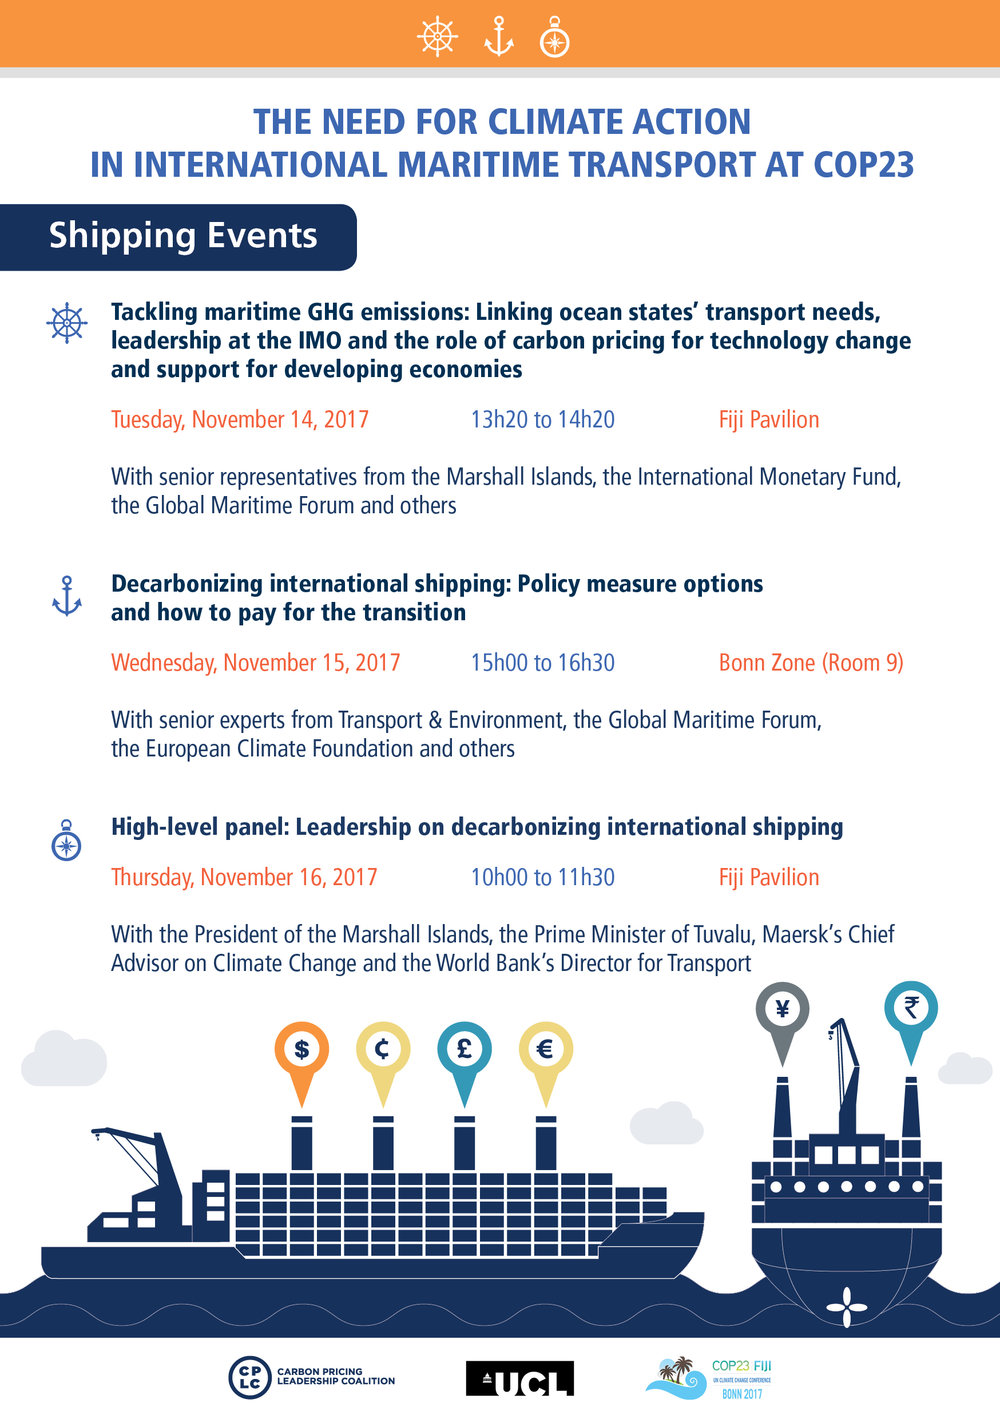 CPLC+Maritime_Shipping-Events_COP23_Week-2.jpg